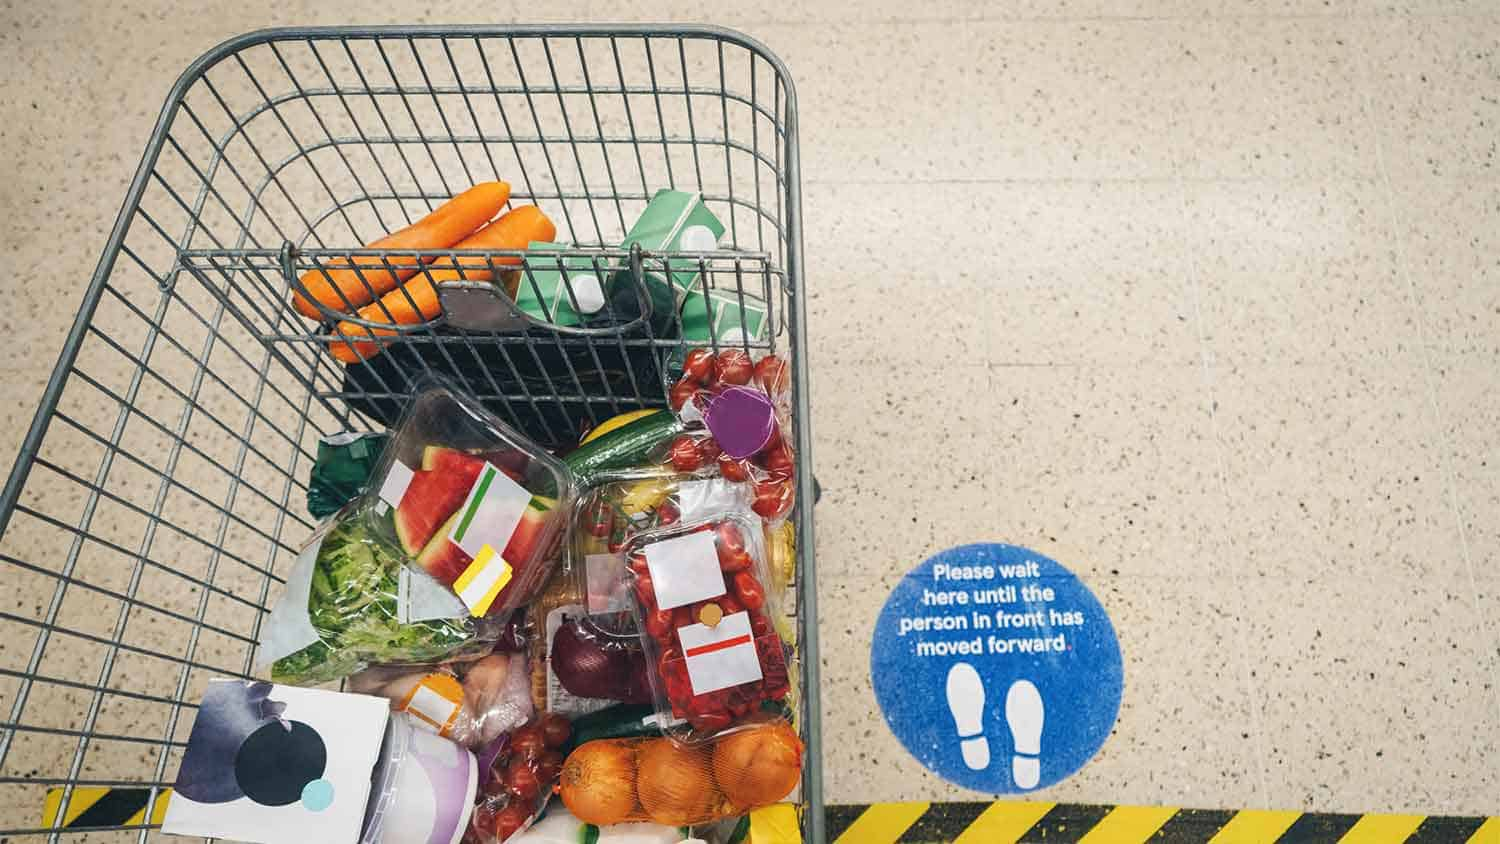 A supermarket trolley full of groceries. A covid 'keep your distance' sign is visible on the floor next to the trolley.